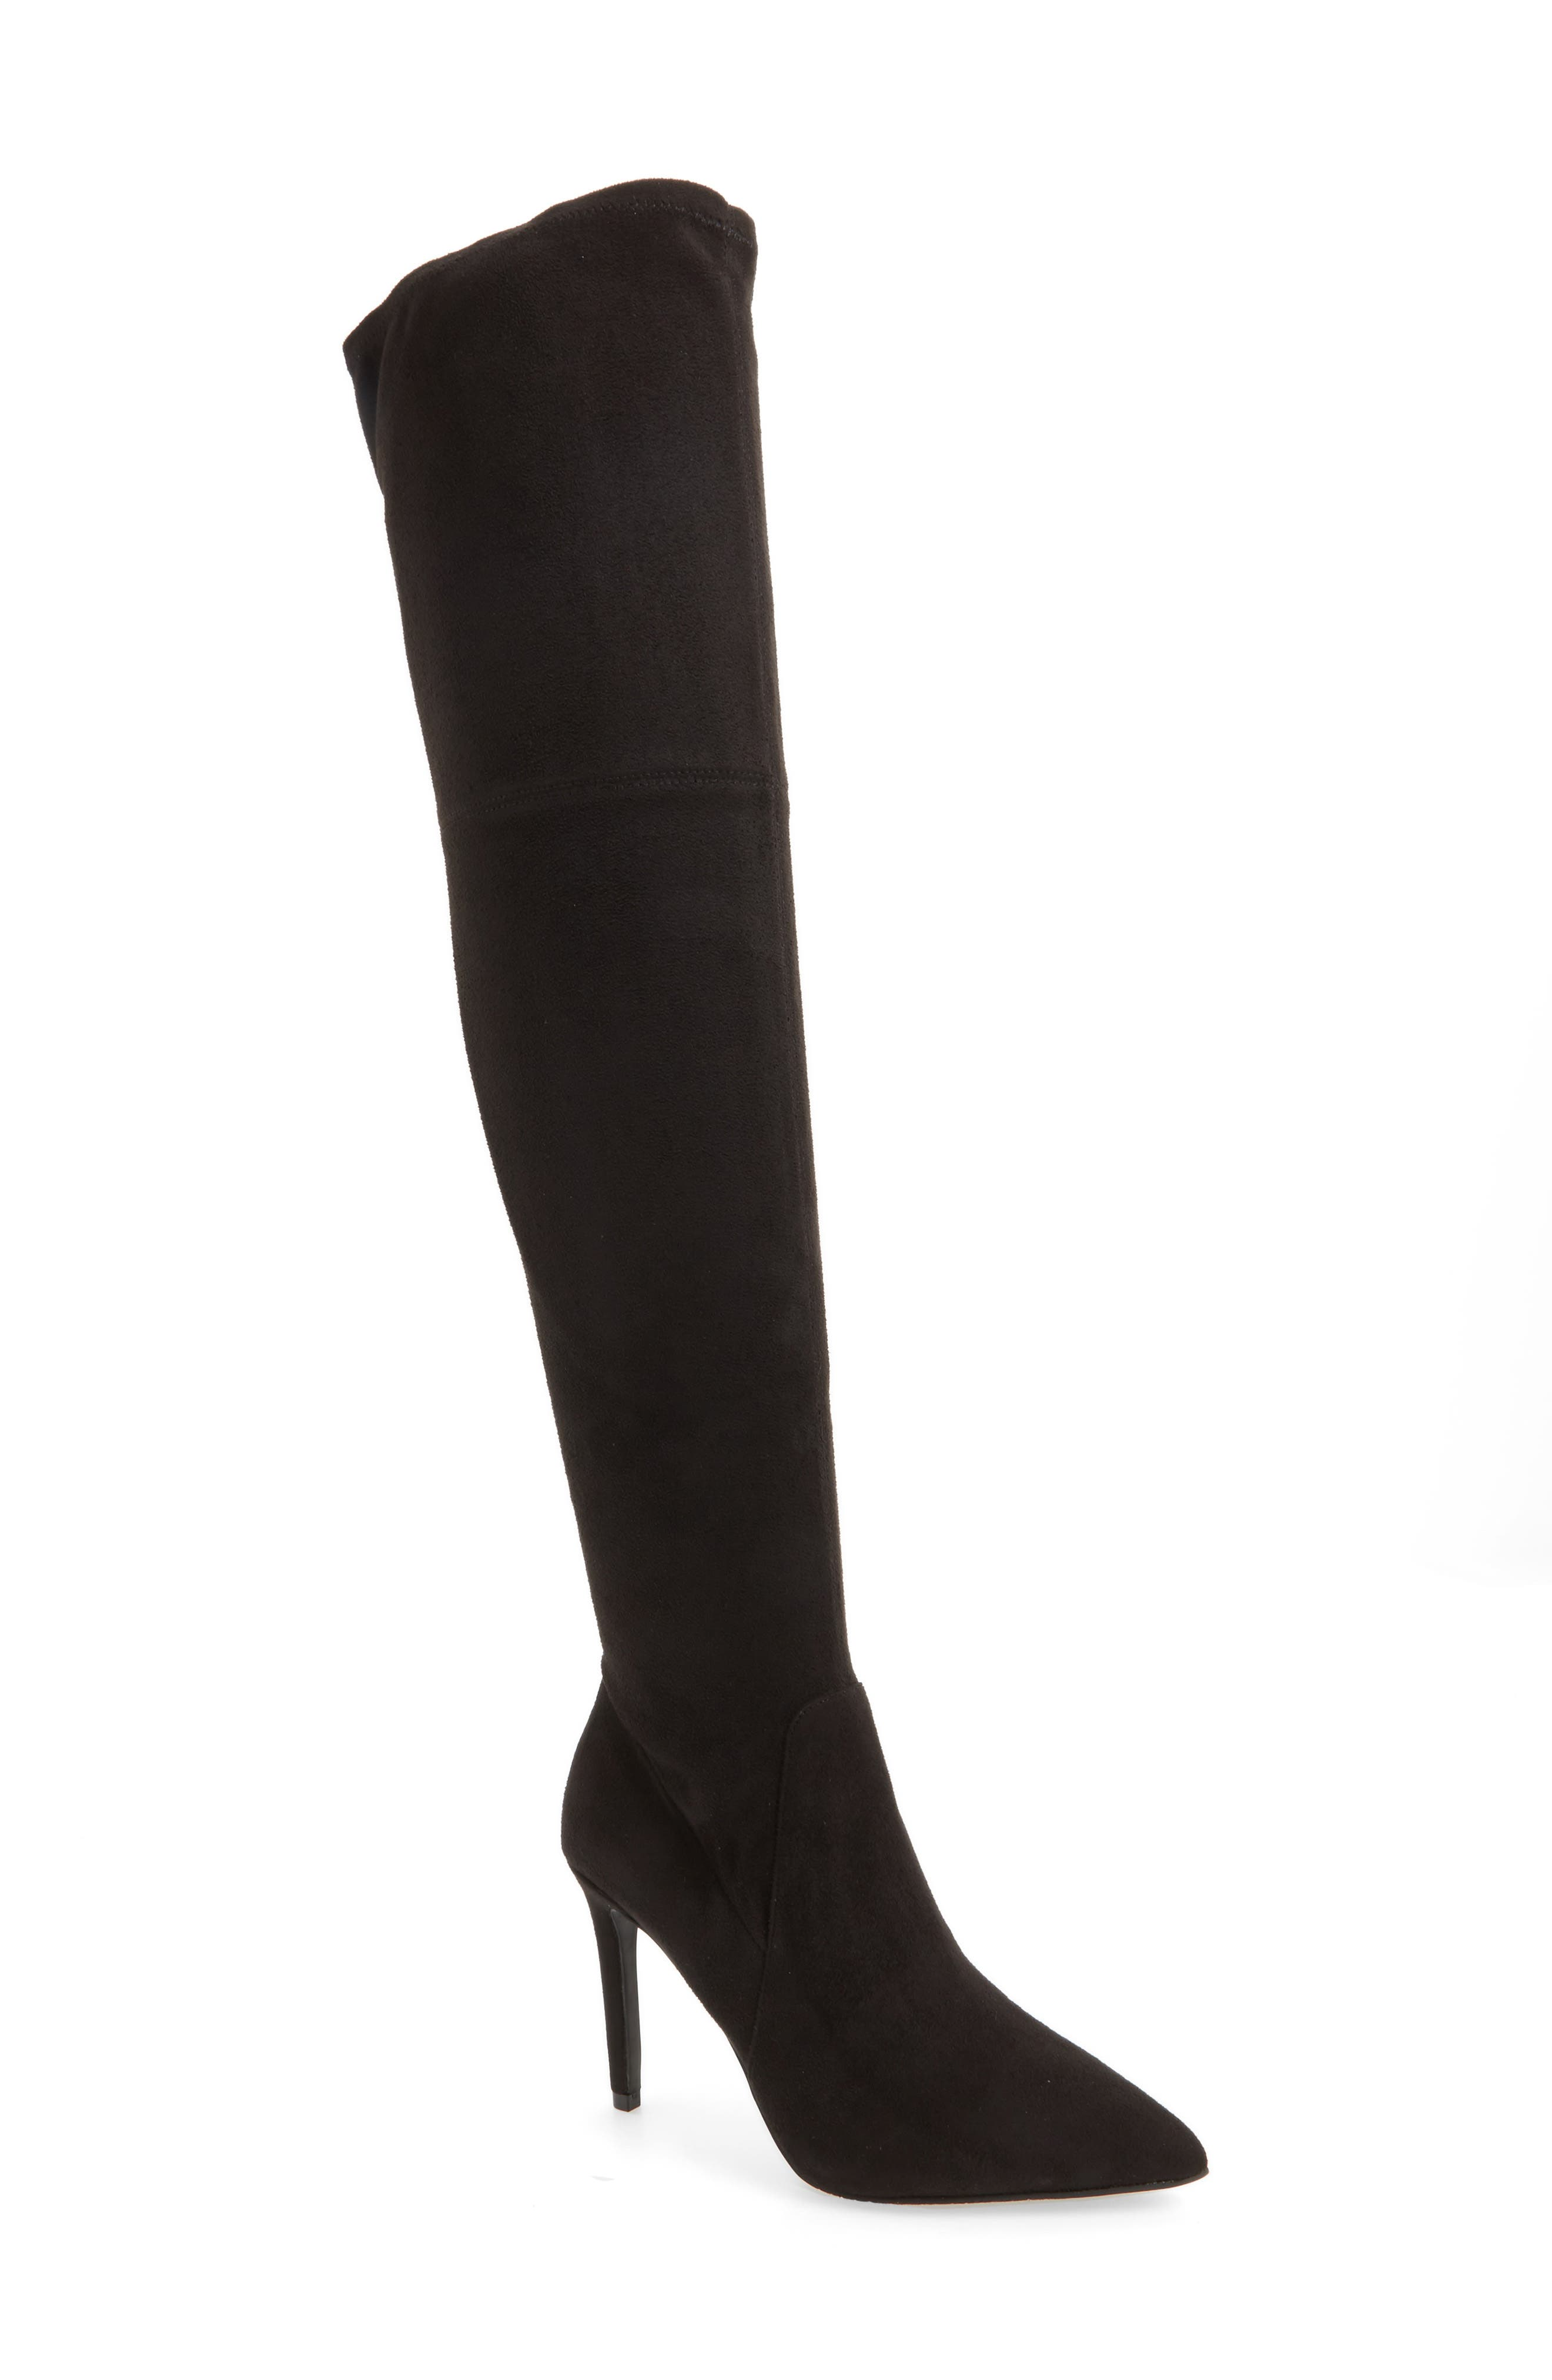 Fab Nara Over the Knee Boot,                             Main thumbnail 1, color,                             Black Stretch Faux Suede